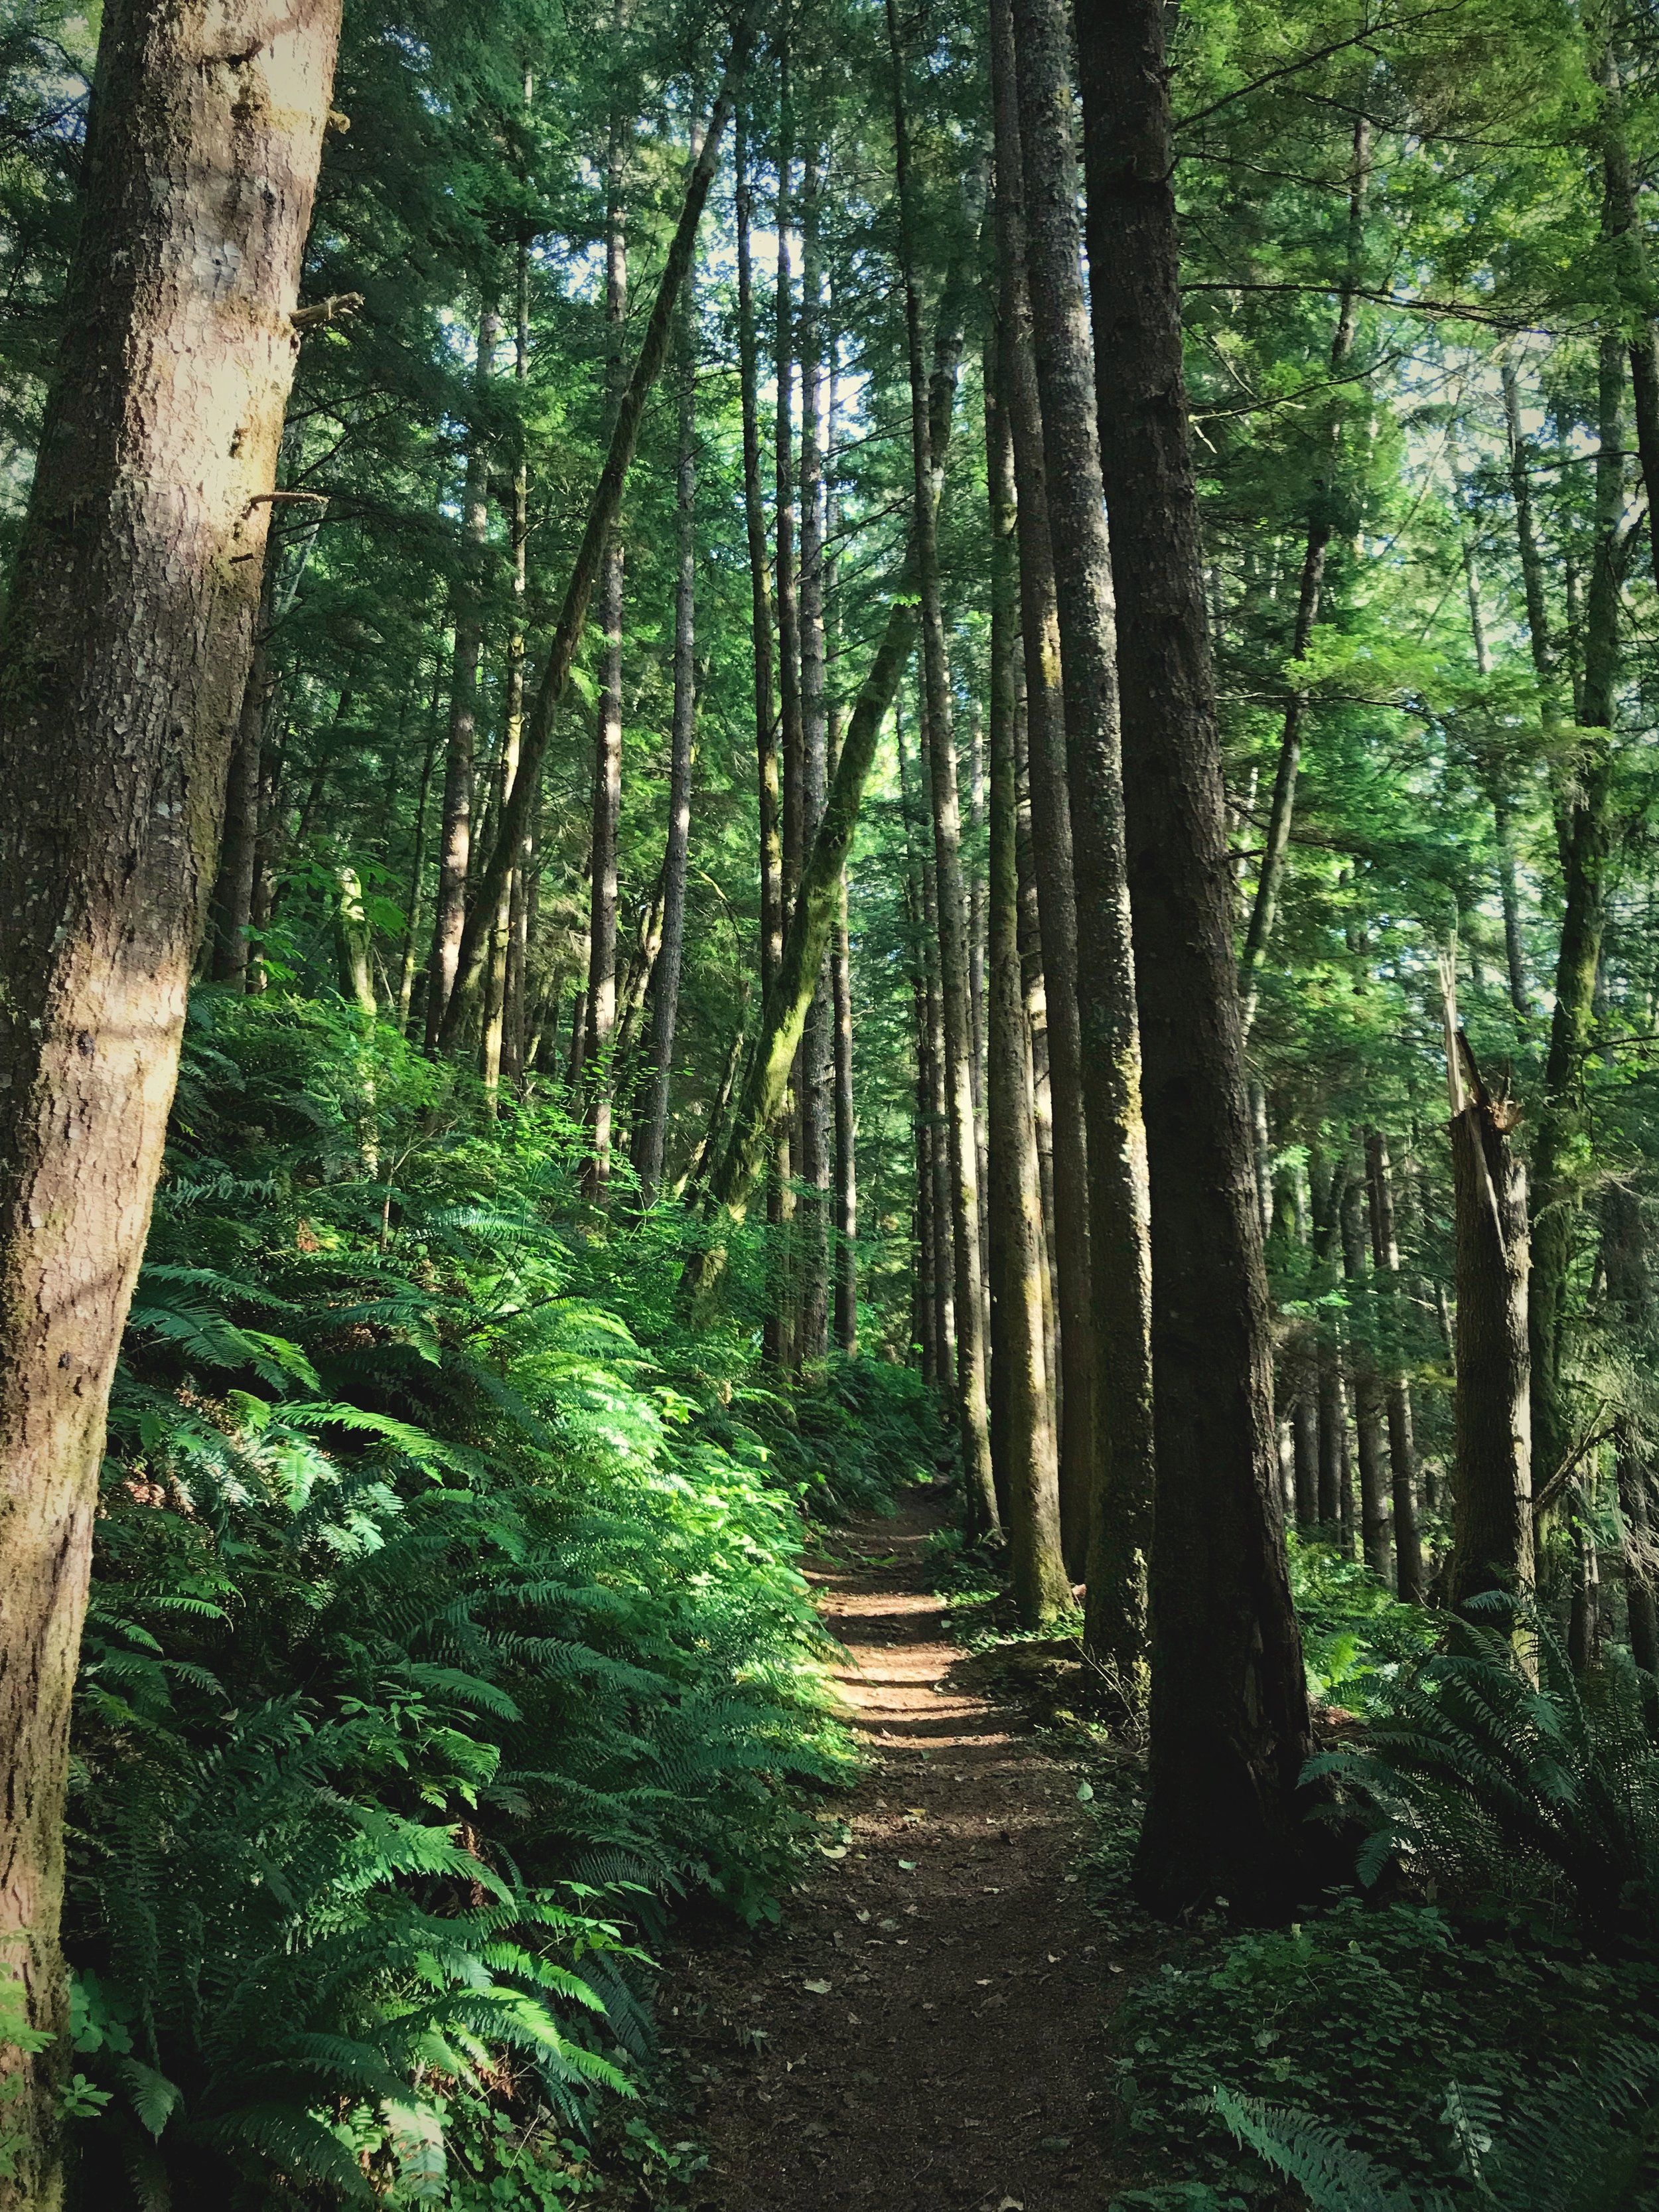 The Harts Cove trail goes through an area of coastal rain forest. It's got an great surface for running.